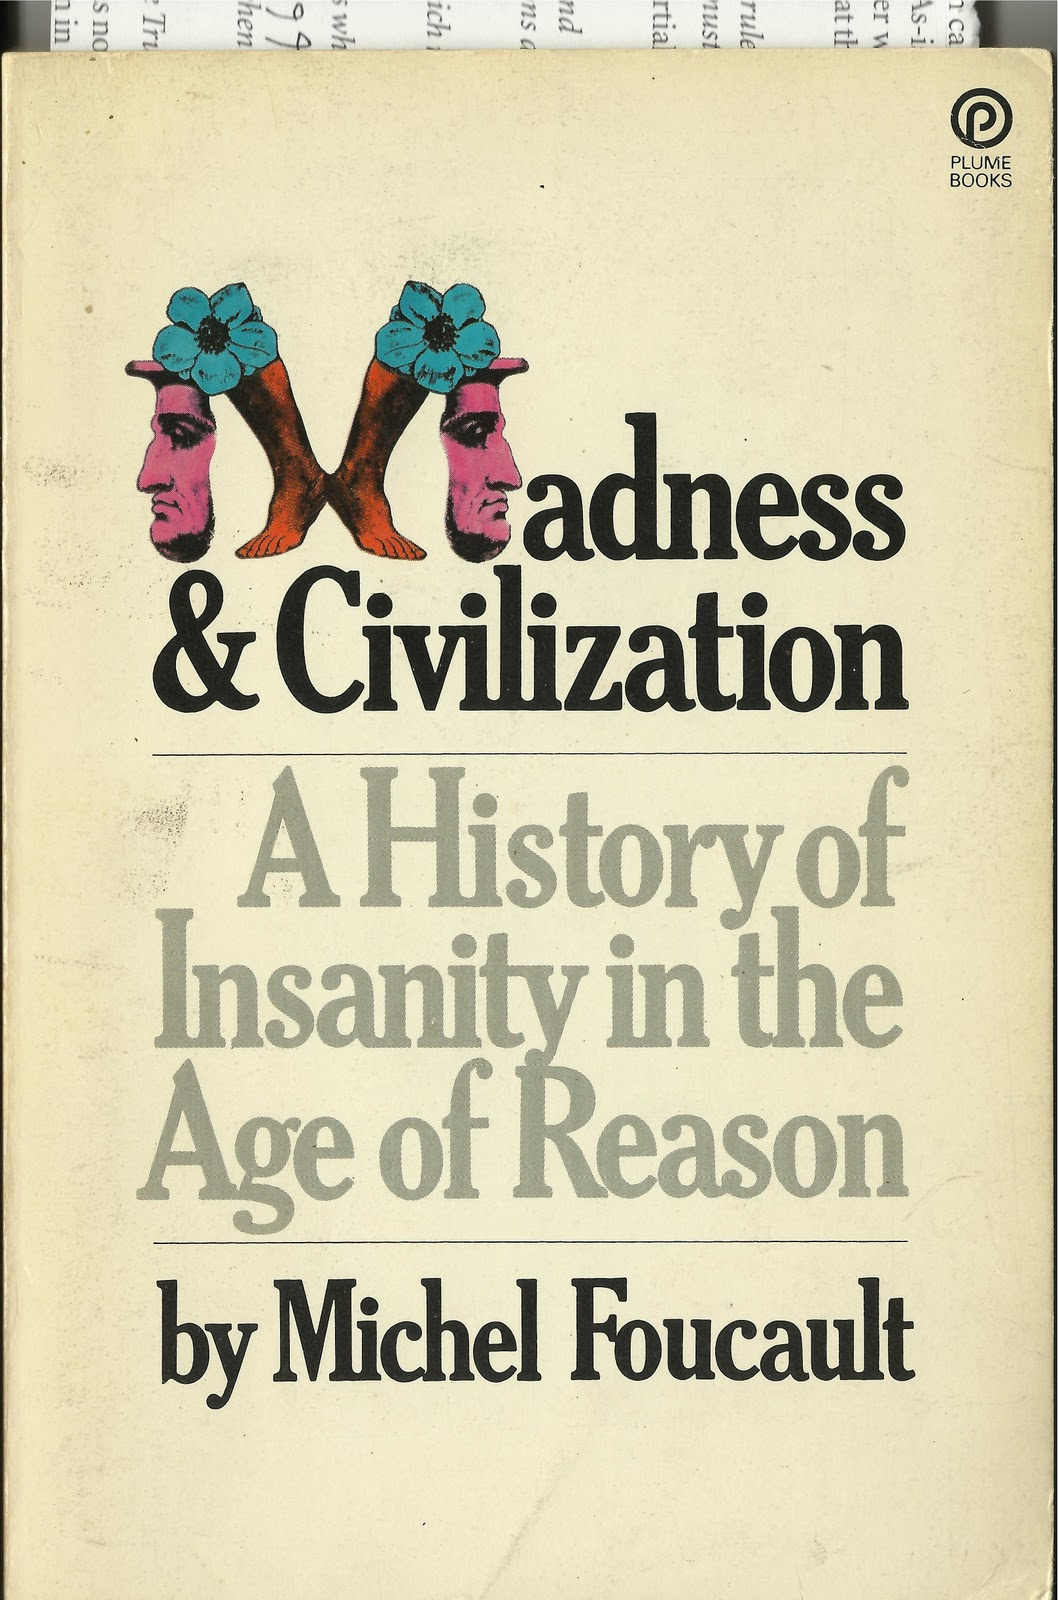 Foucault's Influence on Postmodern Thought | Literary Theory